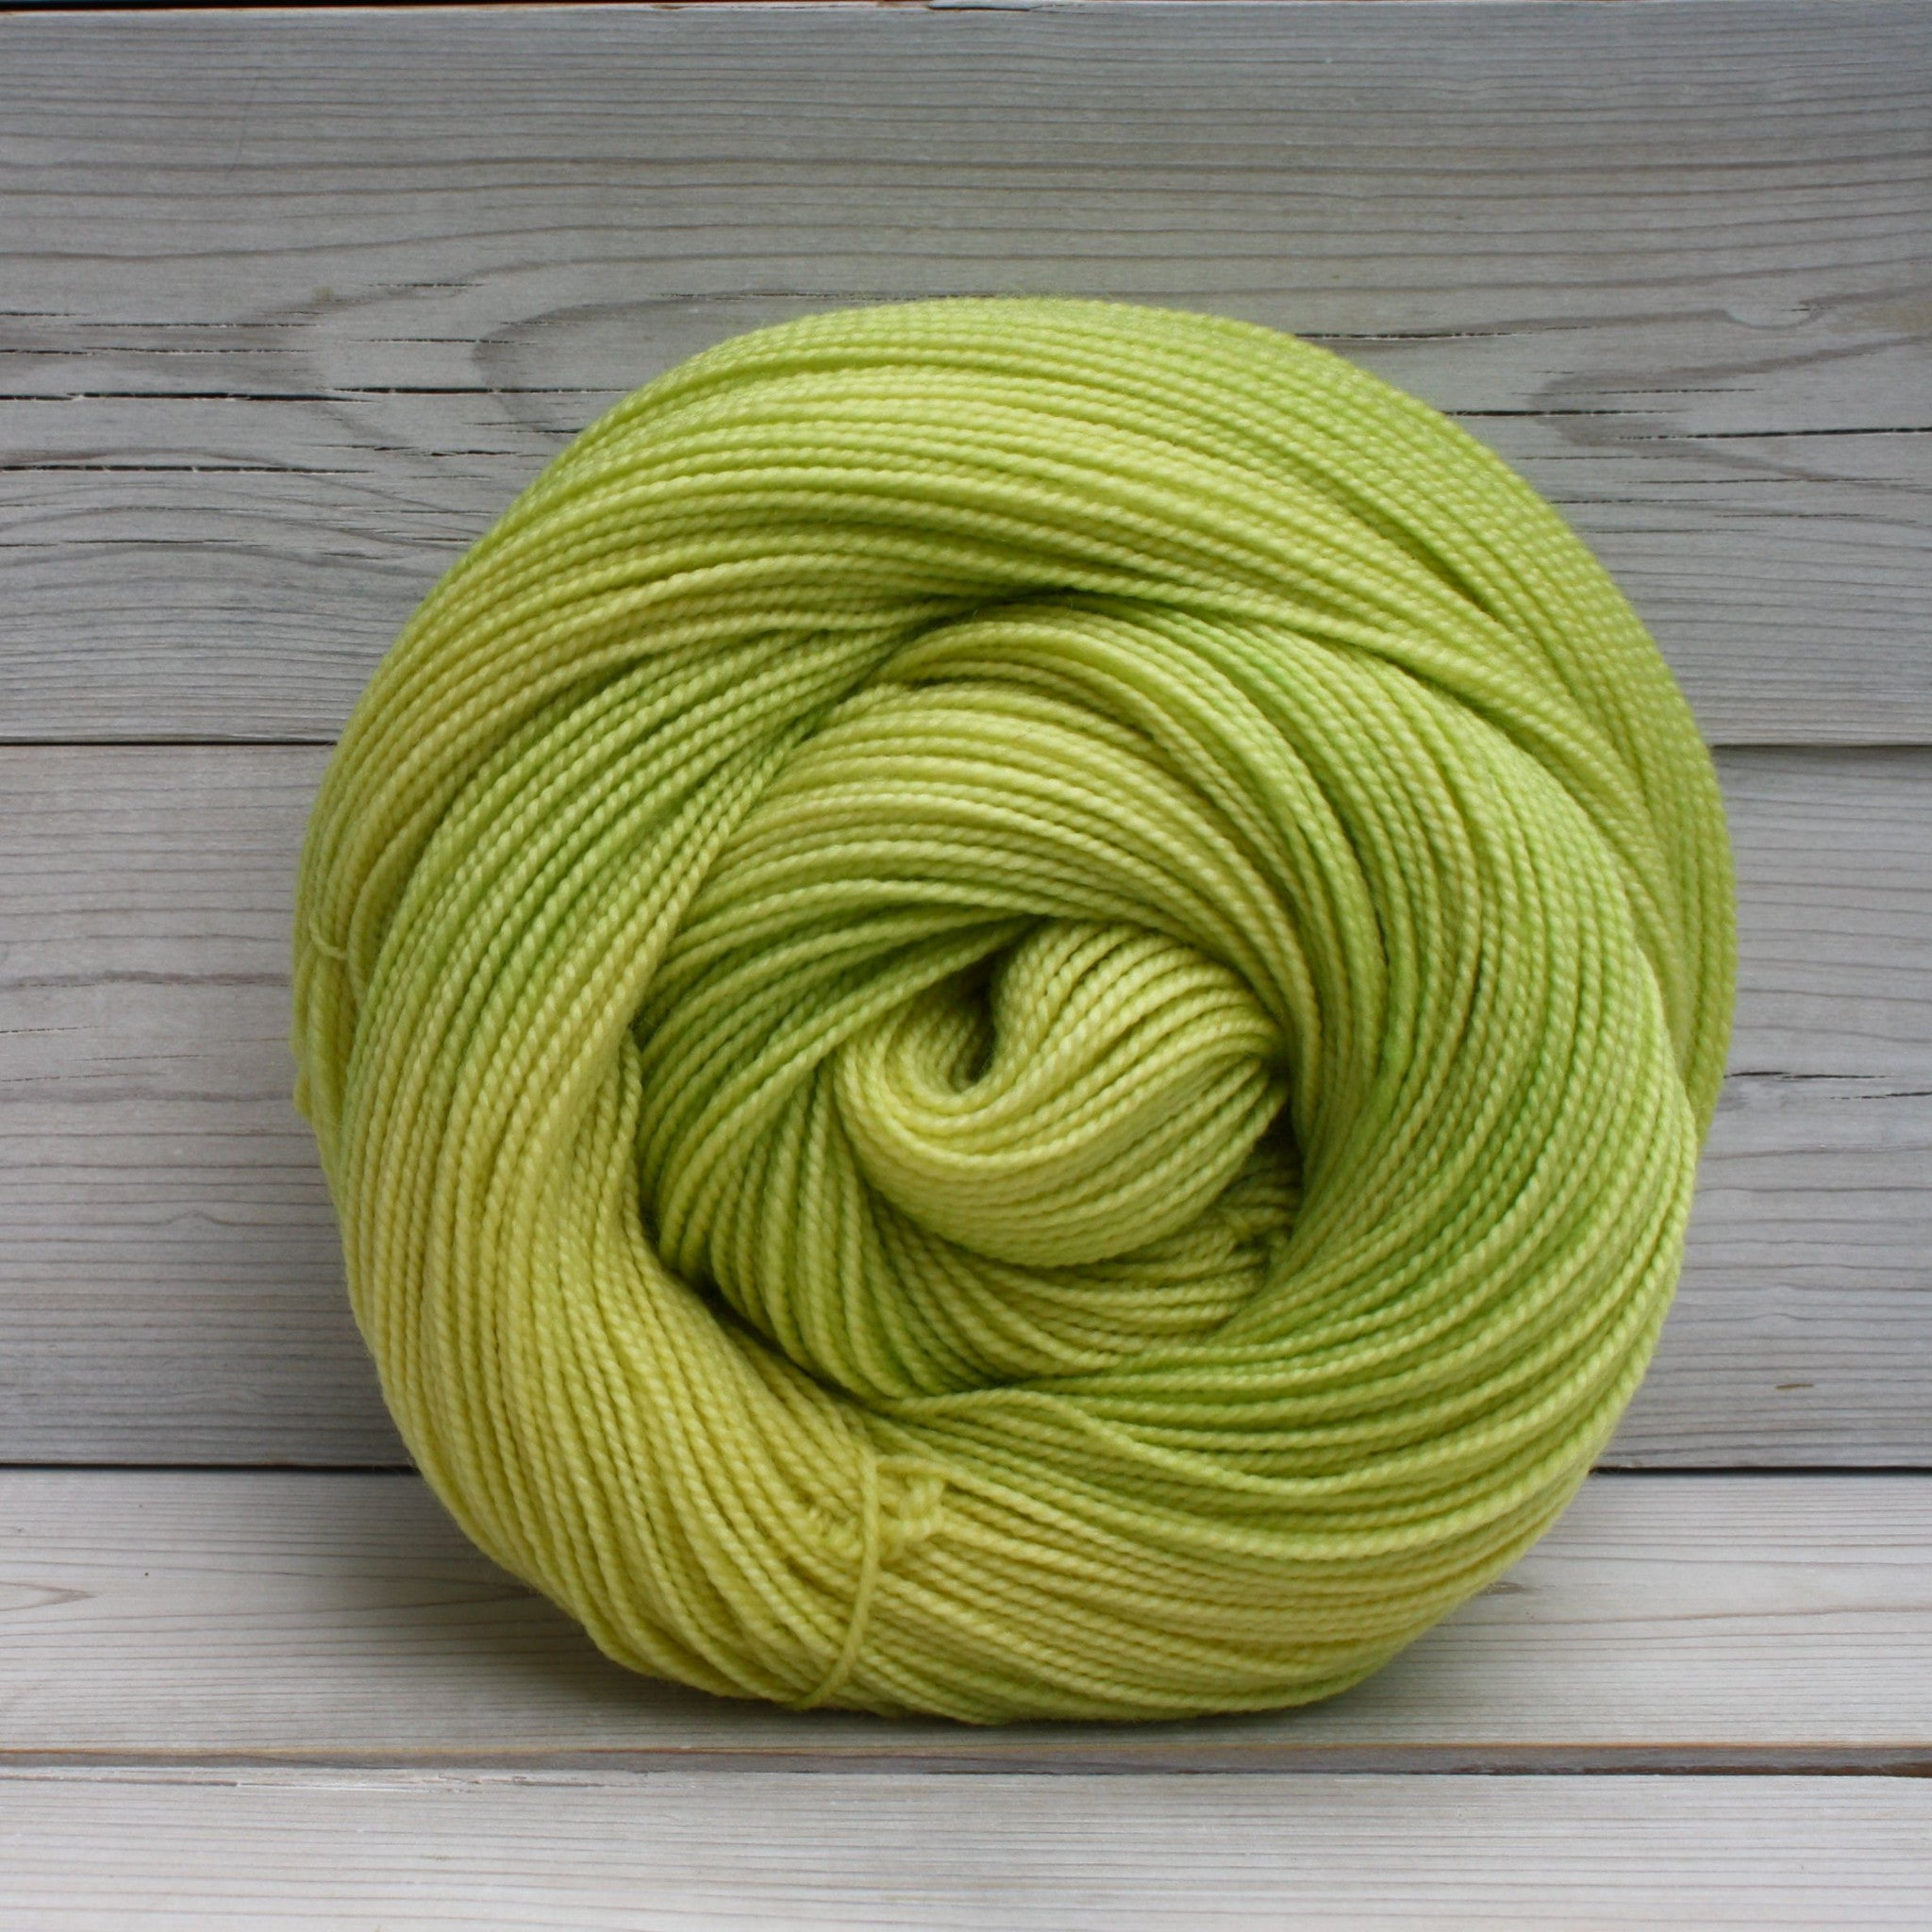 Luna Grey Fiber Arts Celeste Yarn | Colorway: Lemon Lime